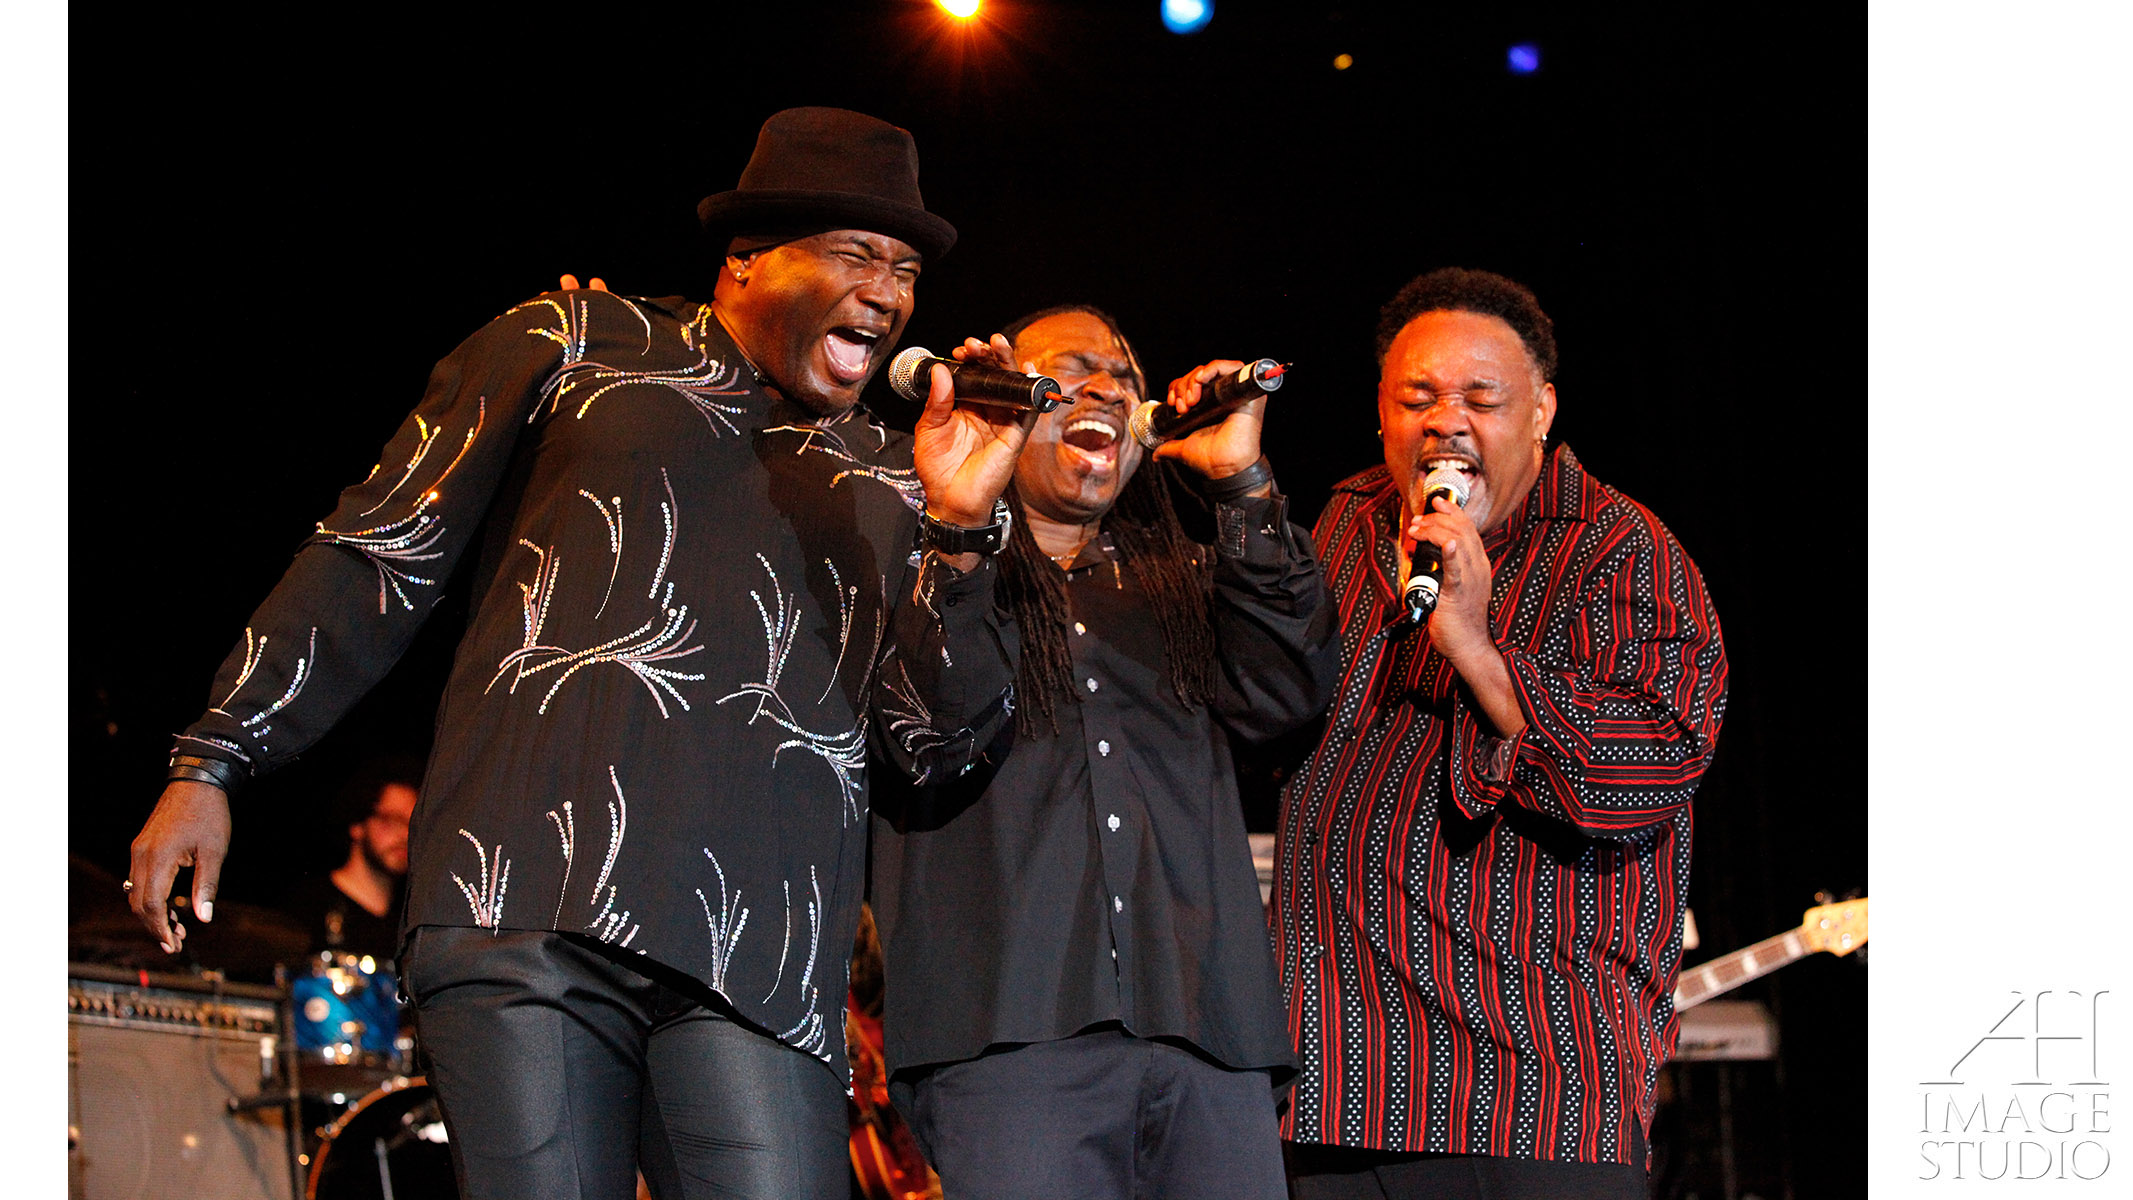 Earth Wind & Fire musicians celebrities photography concert Philip Bailey Maurice White Ralph Johnson